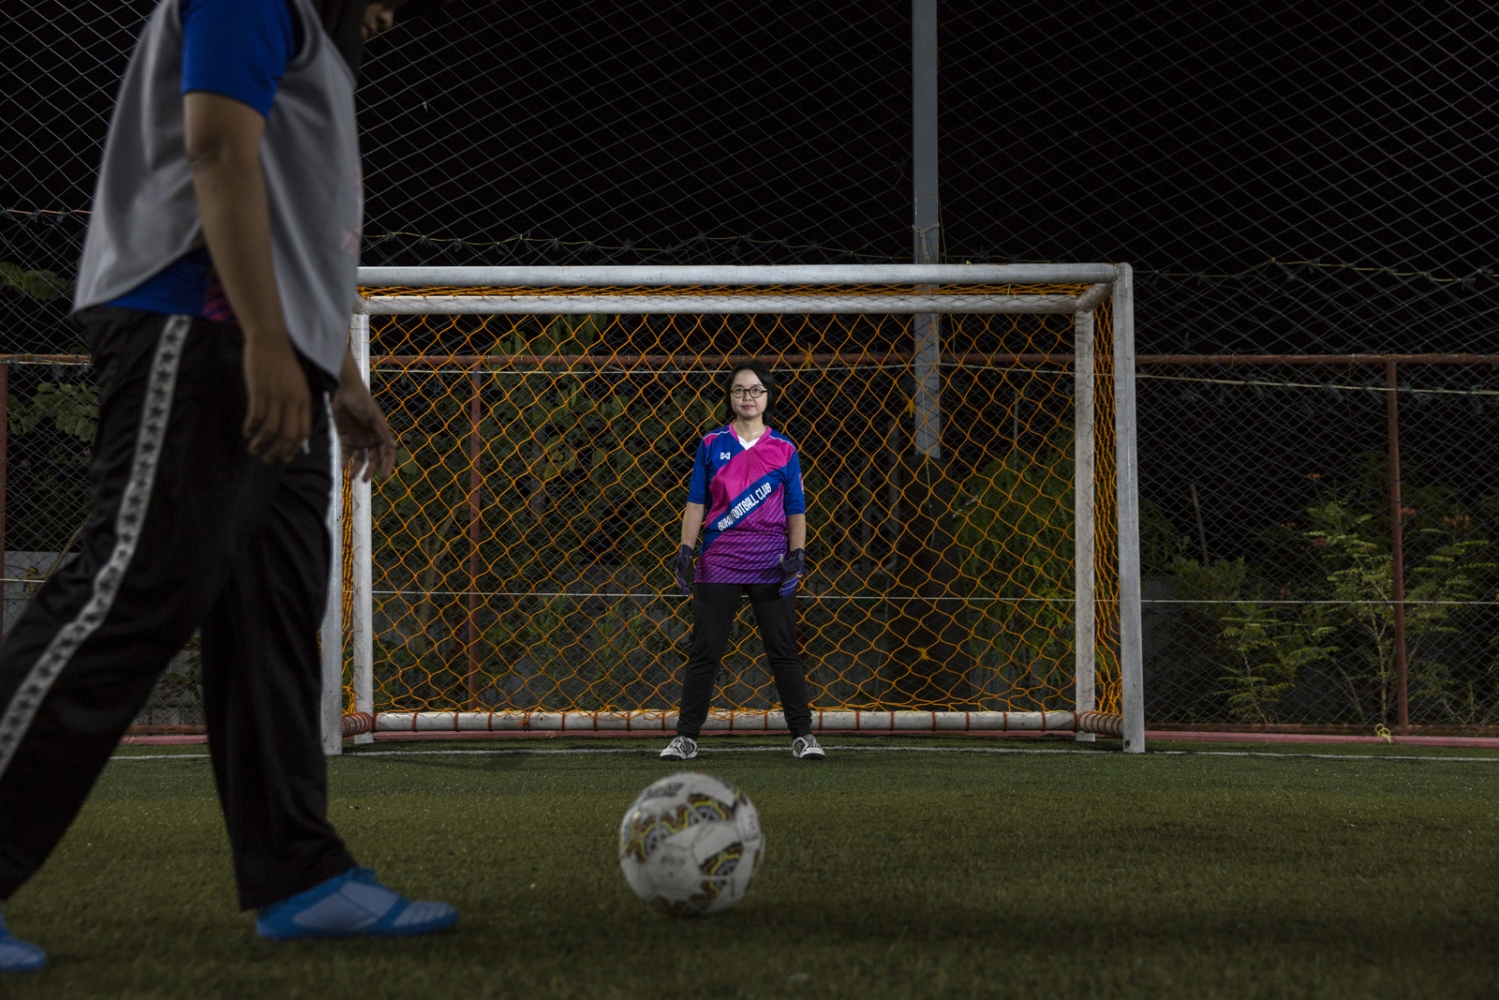 Anticha Sangchai, an openly bi-sexual professor at the Prince of Songklah University Pattani campus, stands in goal on the football pitch where her all-girls club Buku FC practice weekly. She also runs a small book-shop that has books related to gender issues, both of which are not easy in a conservative Muslim area of Southern Thailand that is still in conflict. Pattani, Thailand